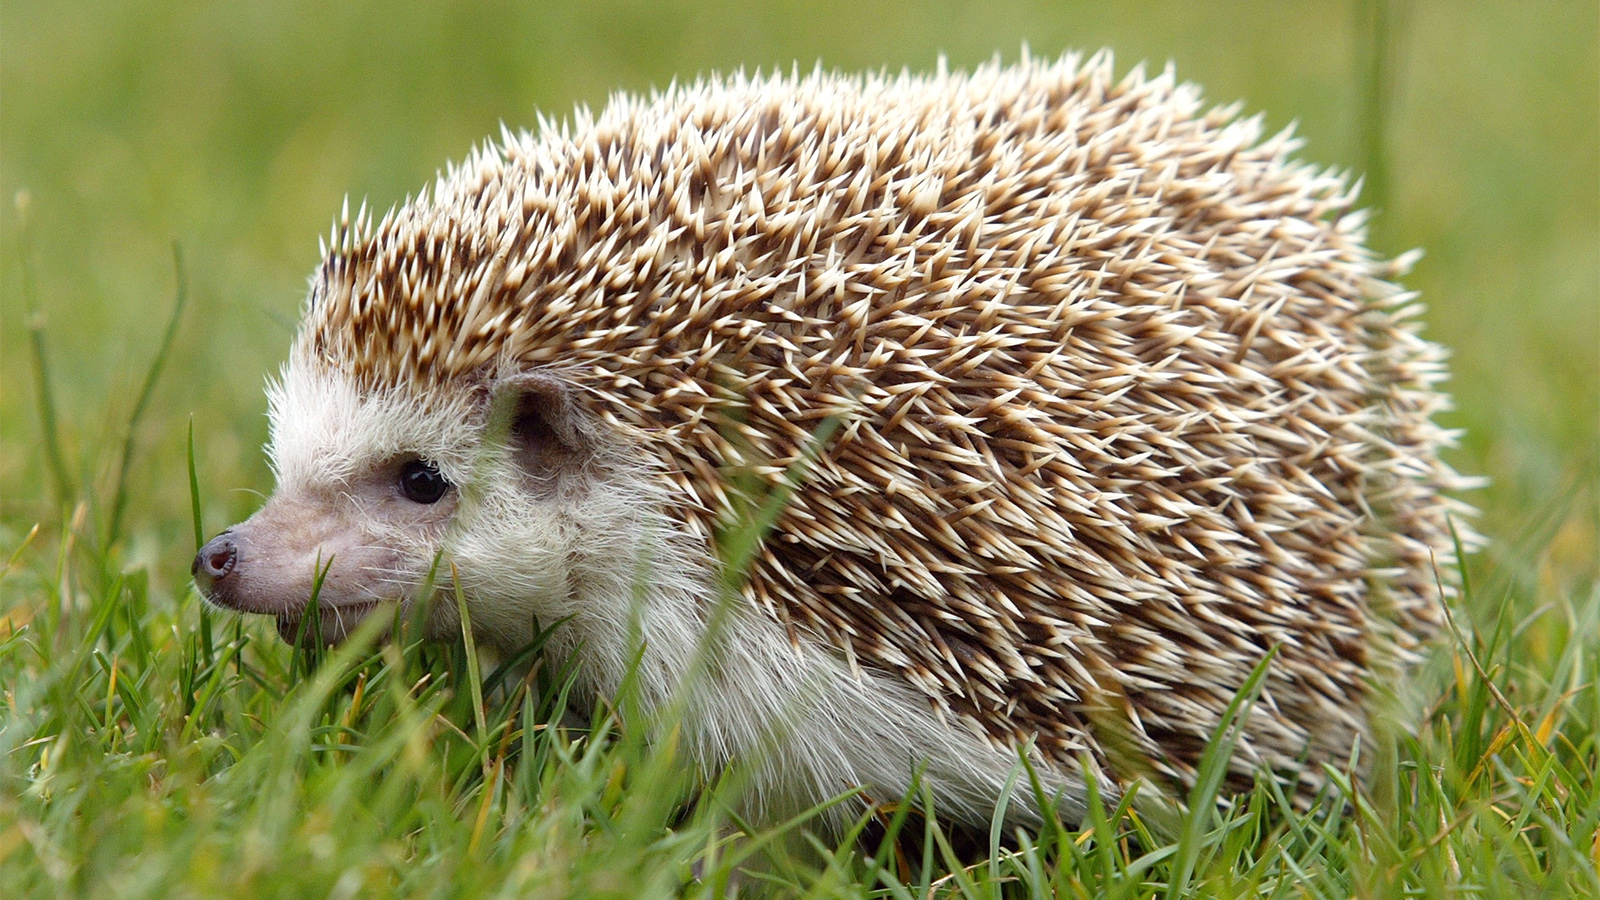 Hedgehogs Adorable But Do They Make Good Pets Howstuffworks